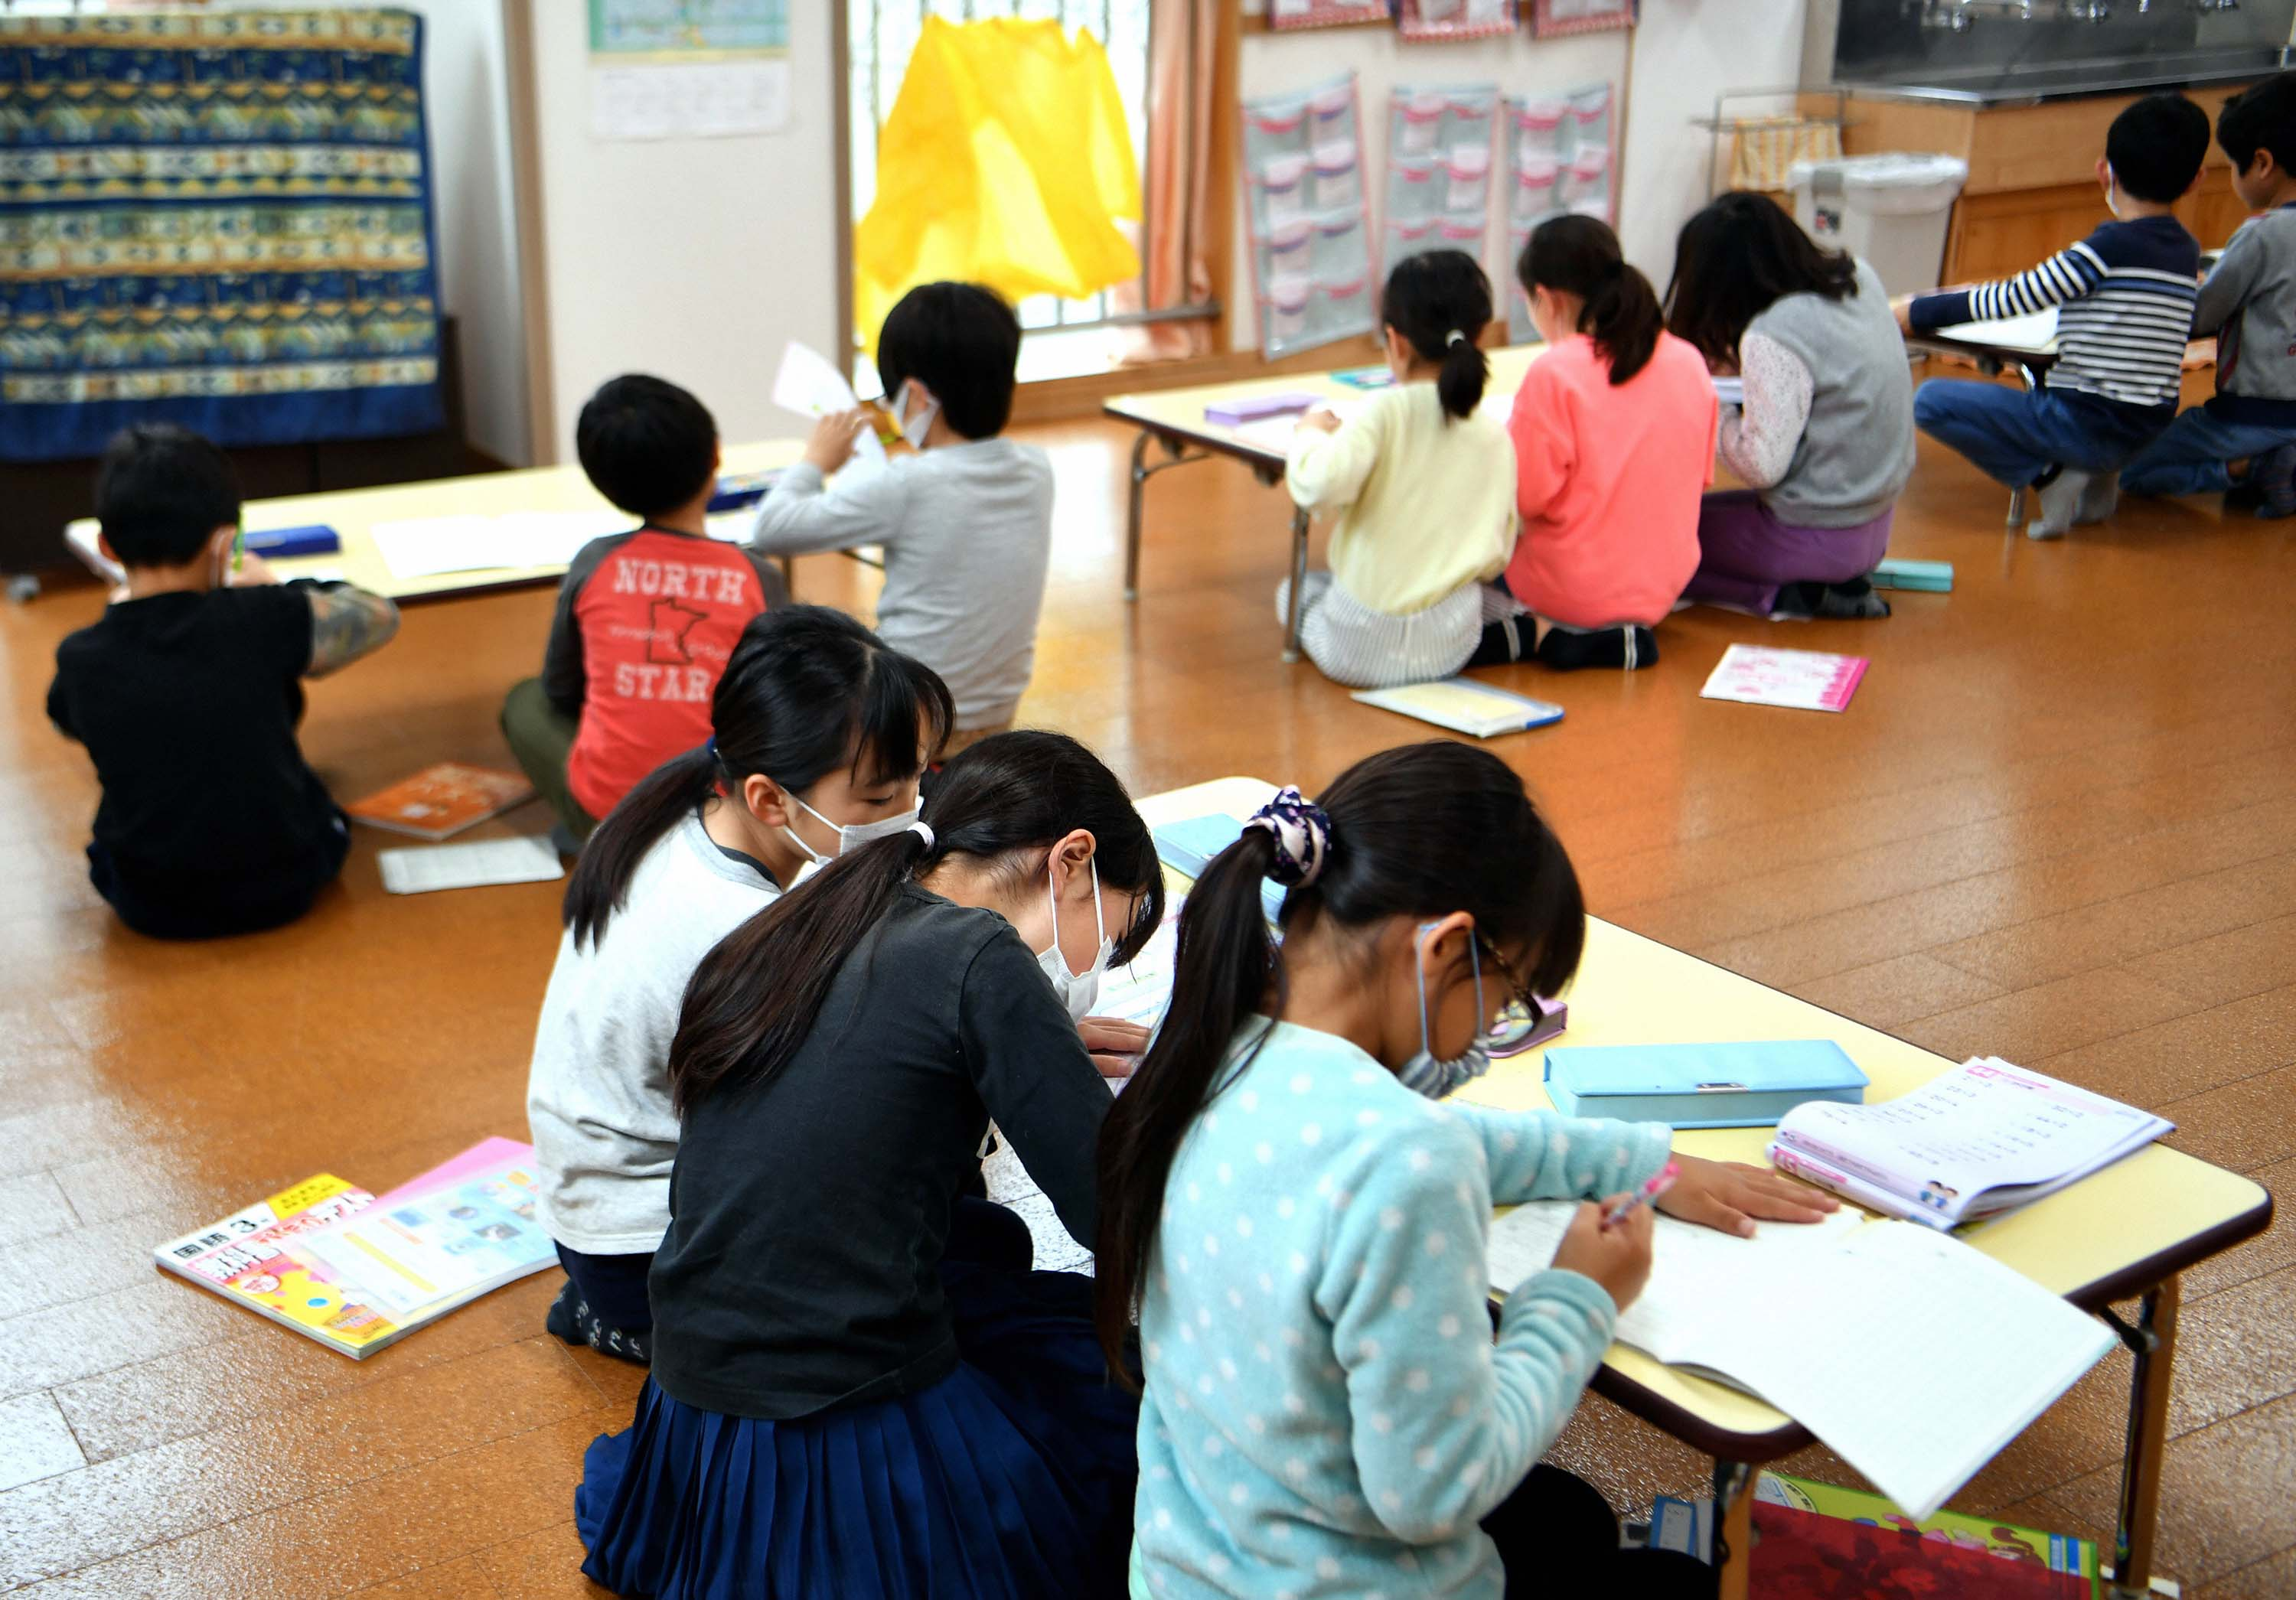 Children study at a community center after schools closed in Tokyo, Japan on March 2. Prime Minister Shinzo Abe asked that Japanese schools remain closed until later this month, as an emergency measure to contain the spread of the coronavirus.